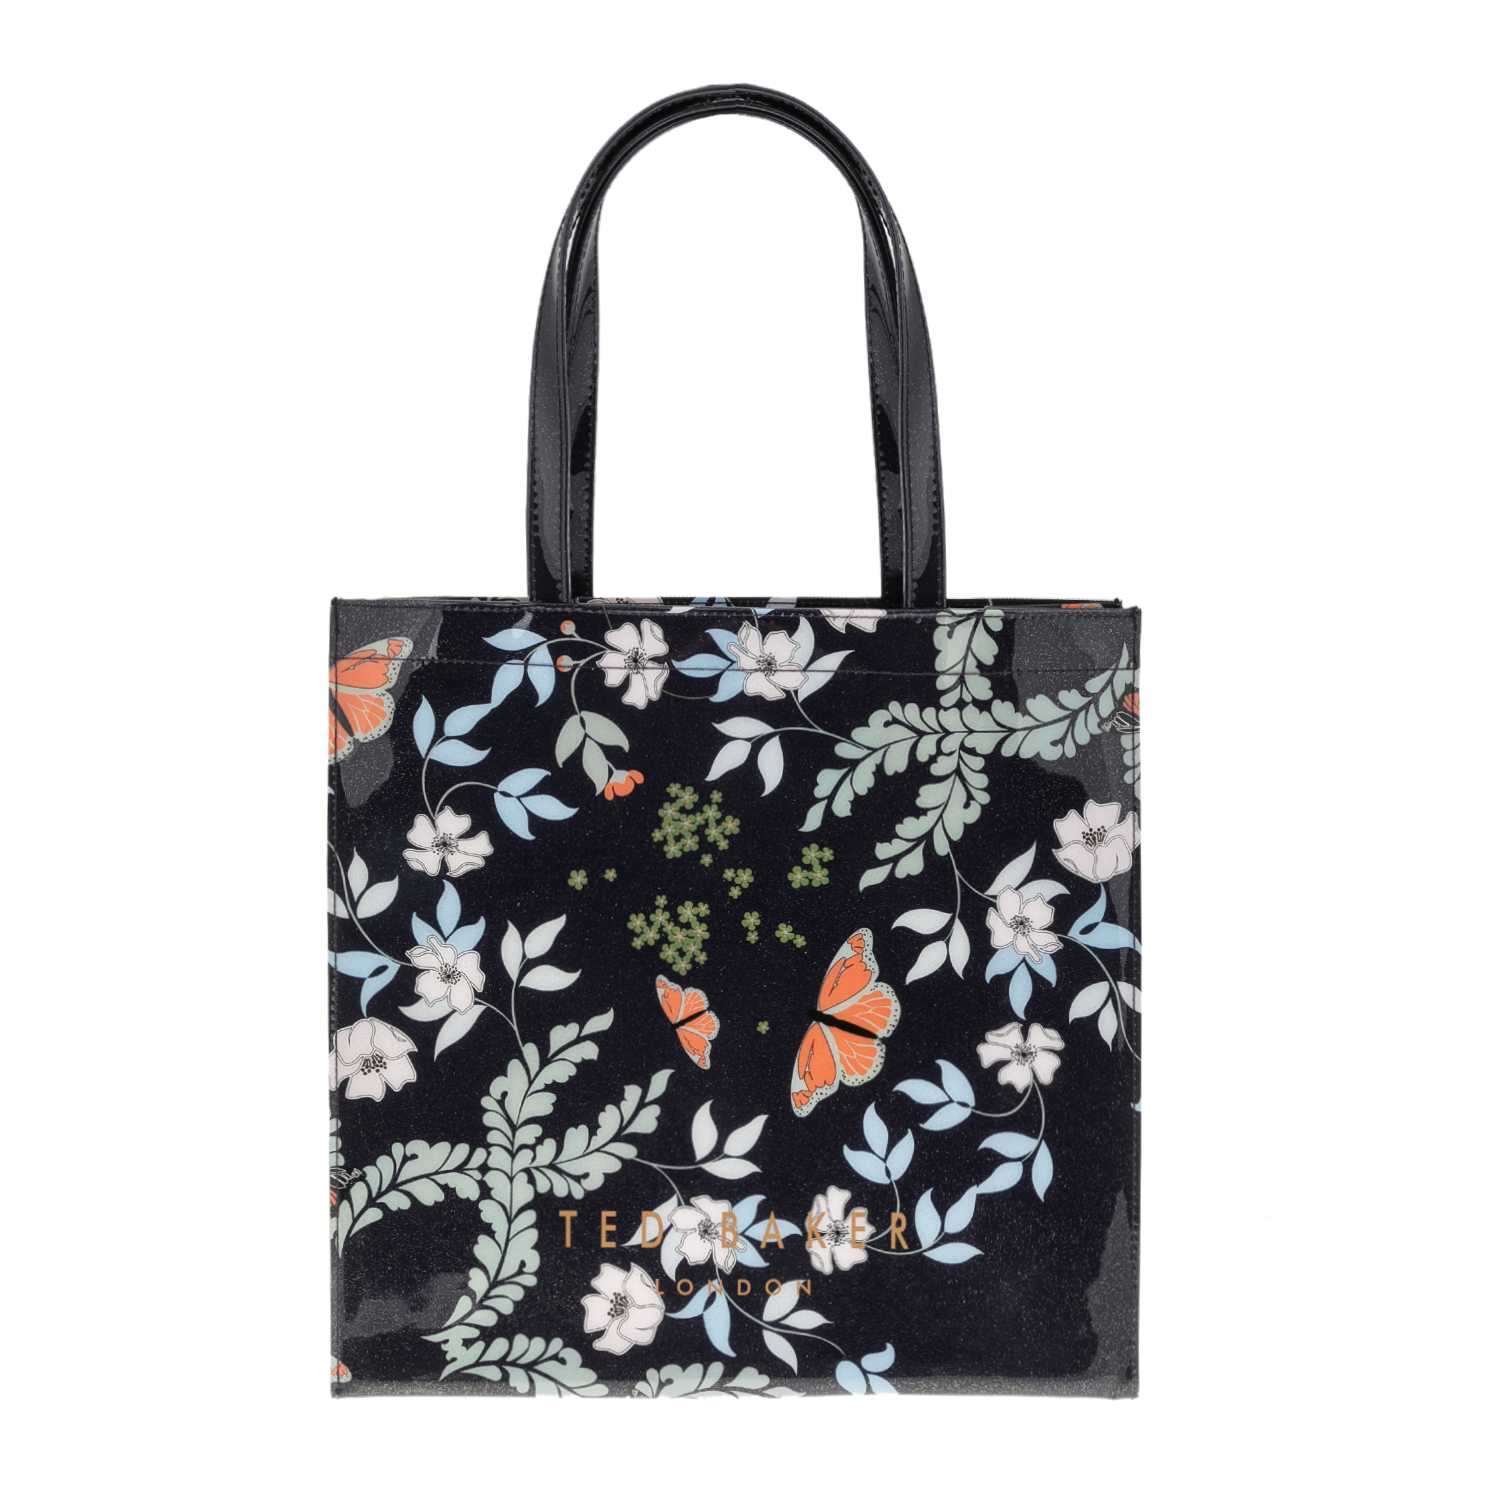 TED BAKER – Γυναικεία τσάντα JANECON KYOTO GARDENS TED BAKER εμπριμέ 1567872.0-0013